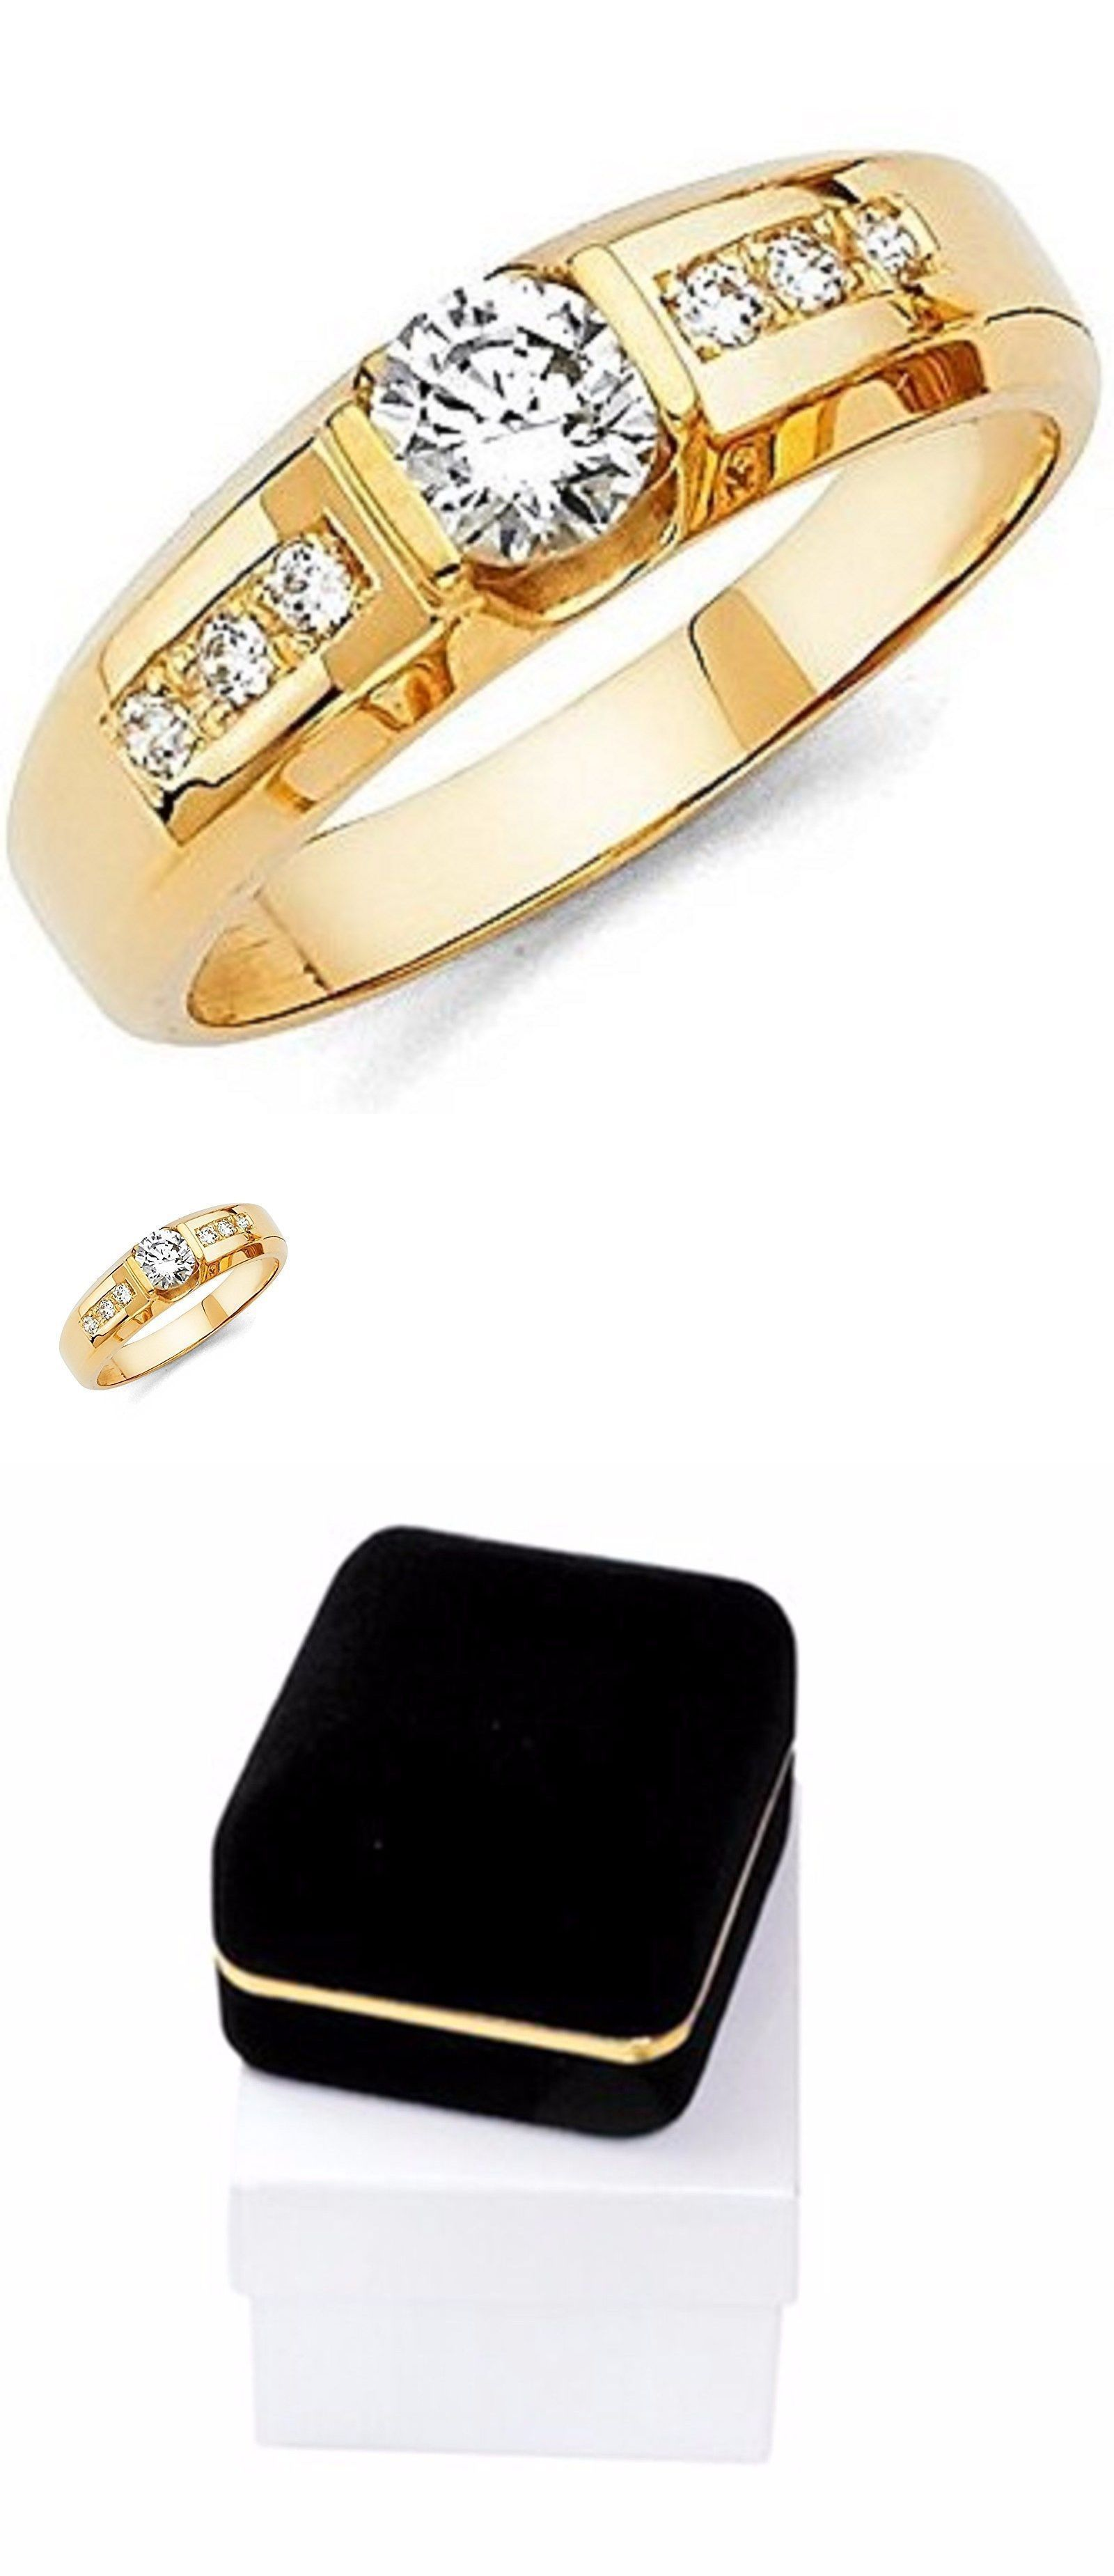 edit the set weddings trinity is man canadamark shakti ring fairtrade gold what engagement rings vs ethical difference